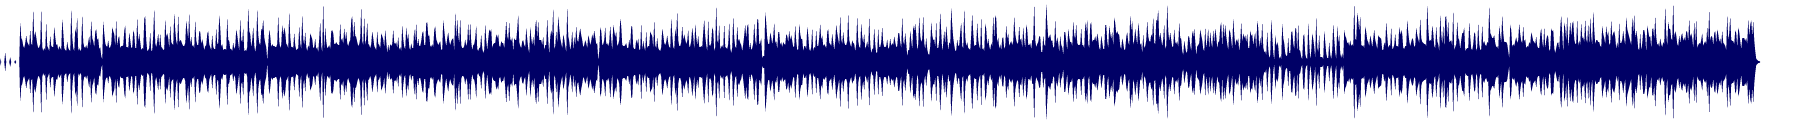 waveform of track #72284